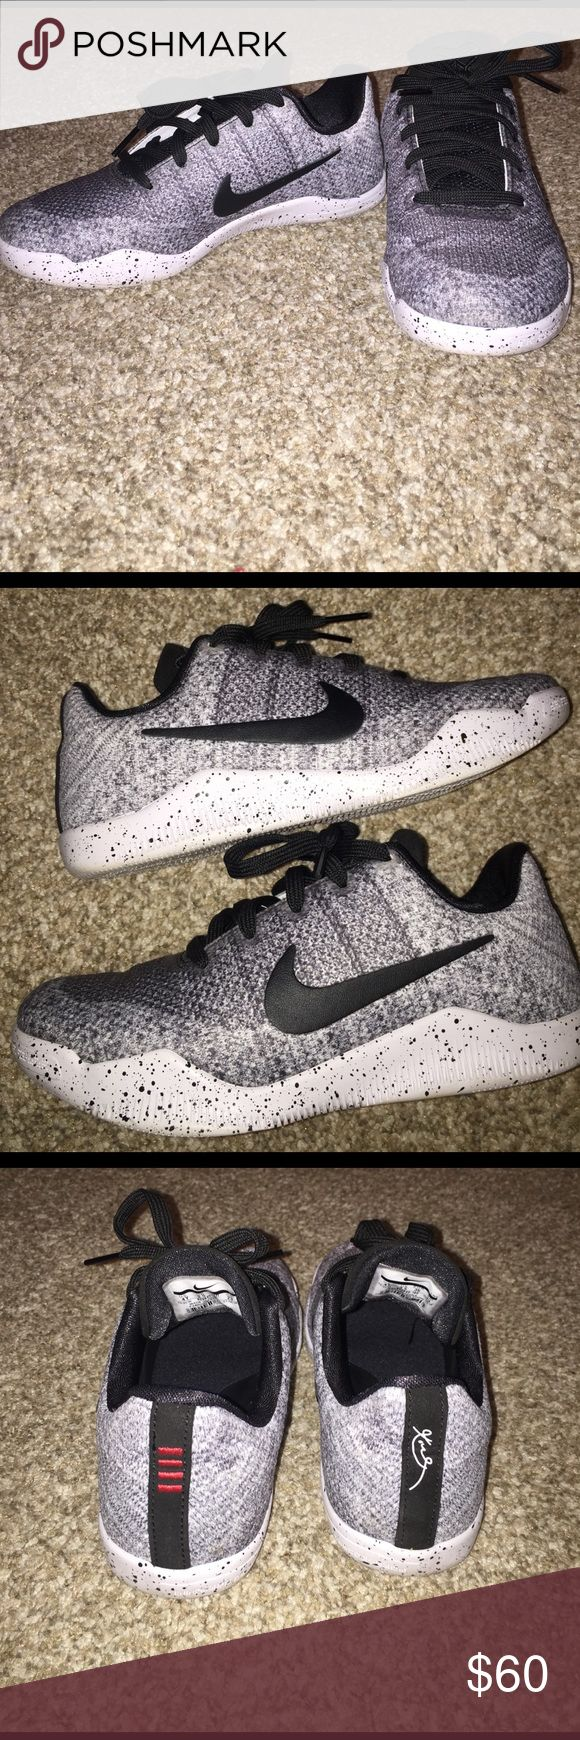 "KOBE BRYANT SNEAKERS KOBE BRYANT ""Oreo."" Kids size 4Y, I am a ladies 6 61/2 and these fit just fine! Very LIGHTLY worn. Like NEE. Purchased only 4 months ago! NO FLAWS Nike Shoes Sneakers"